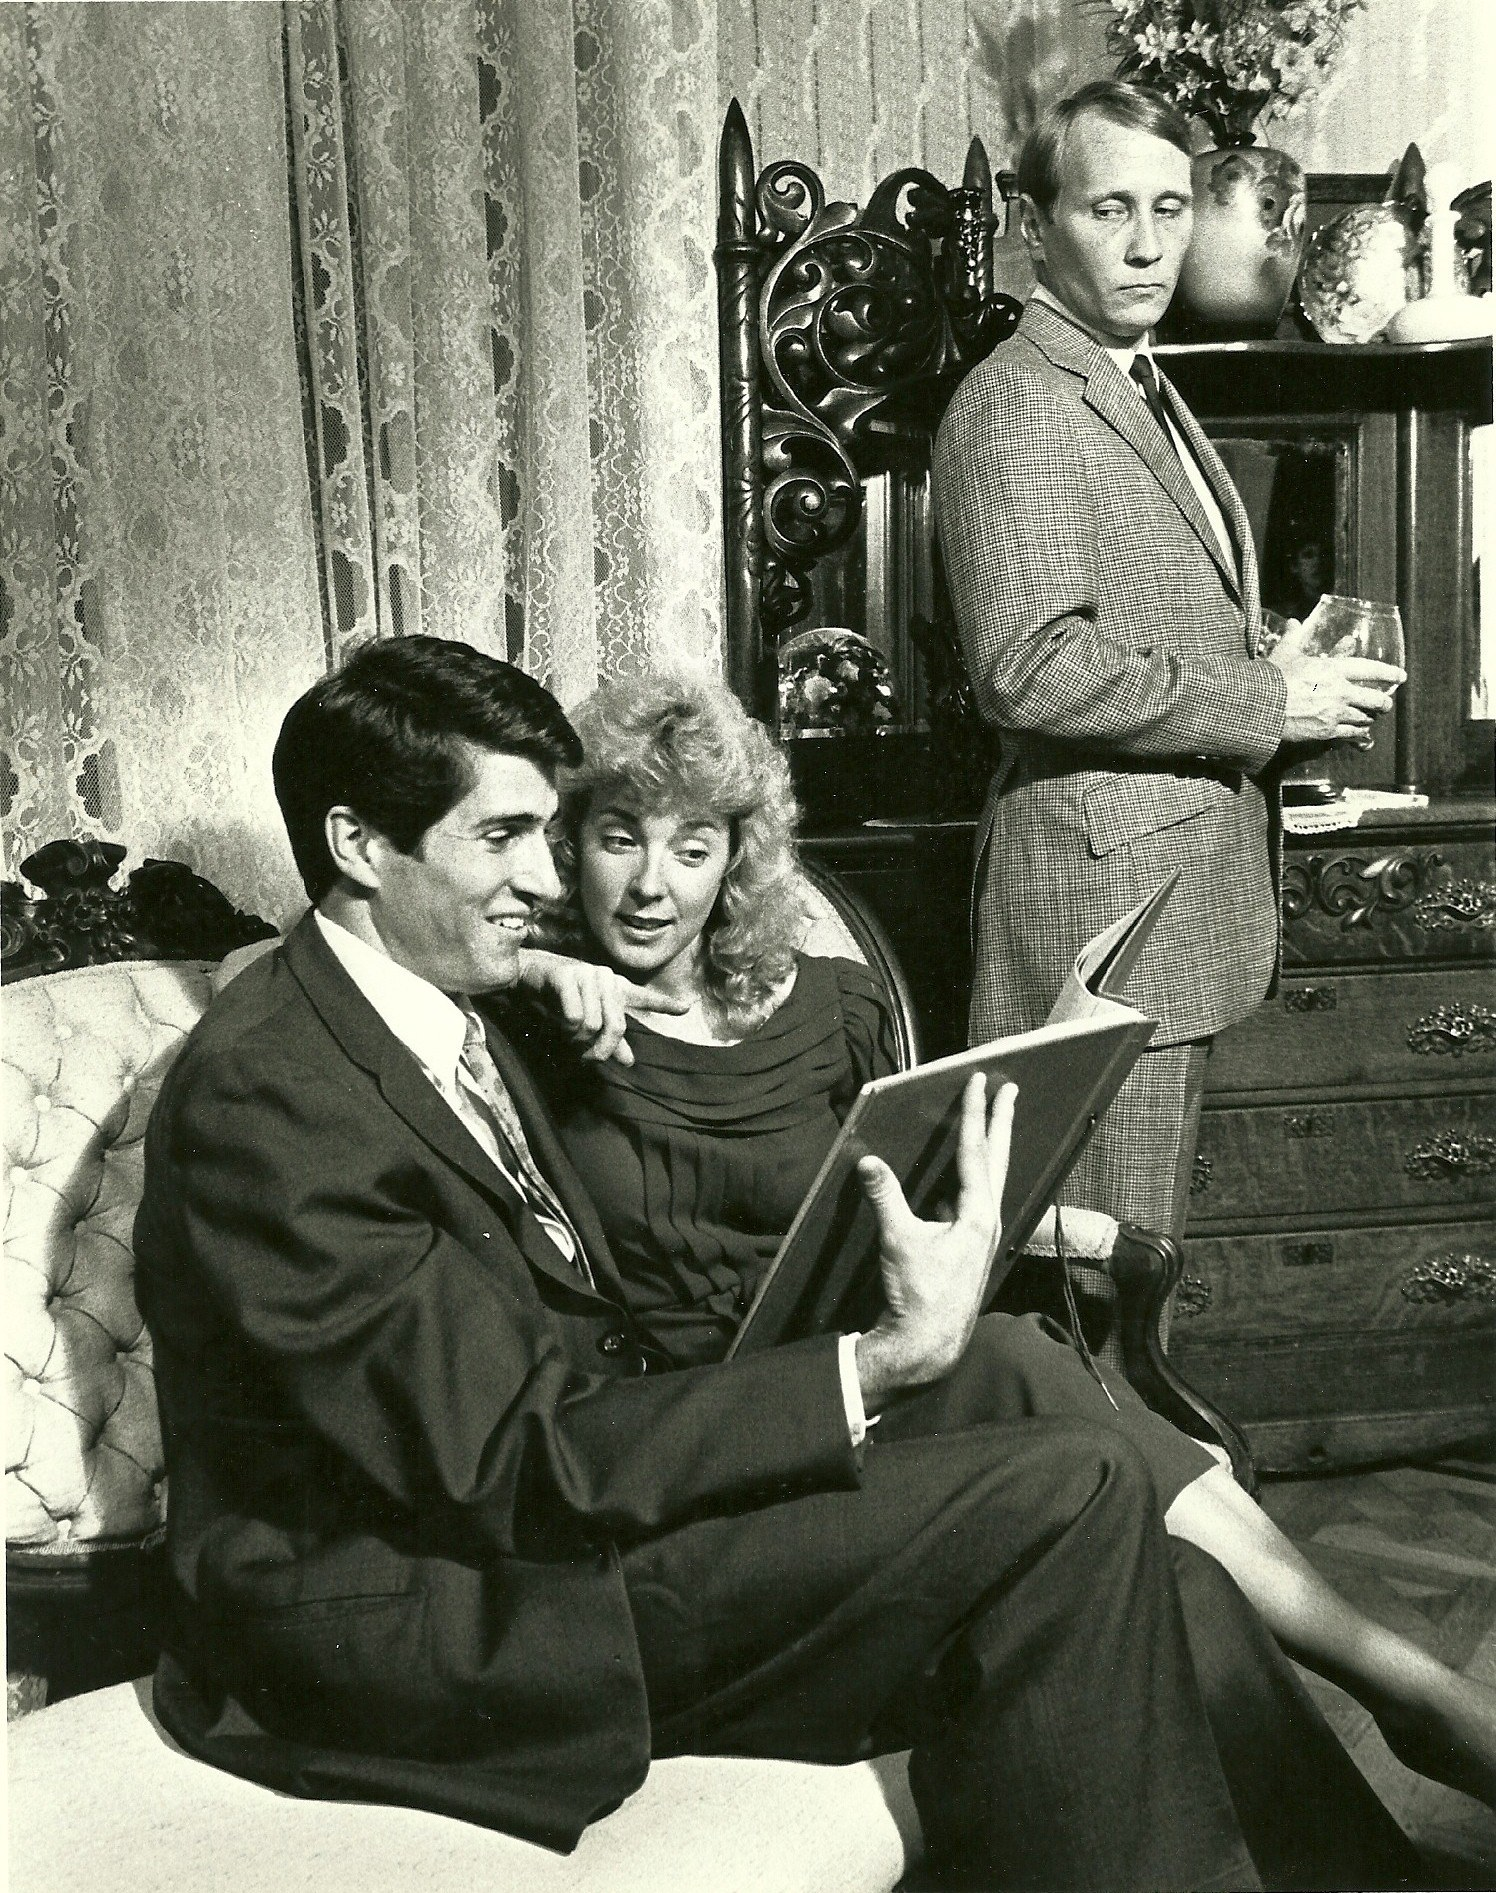 """Dial M for Murder, directed by Randal K. West and produced by Chris Curcio at 3rd Street Theatre April 14-27, 1985, featured David Helmstetter (left), Cathy Dresbach and Chris Witt in the cast. (Memorabilia courtesy of David Helmstetter) (The photo was staged at the historic Rosson House in downtown Phoenix.)"